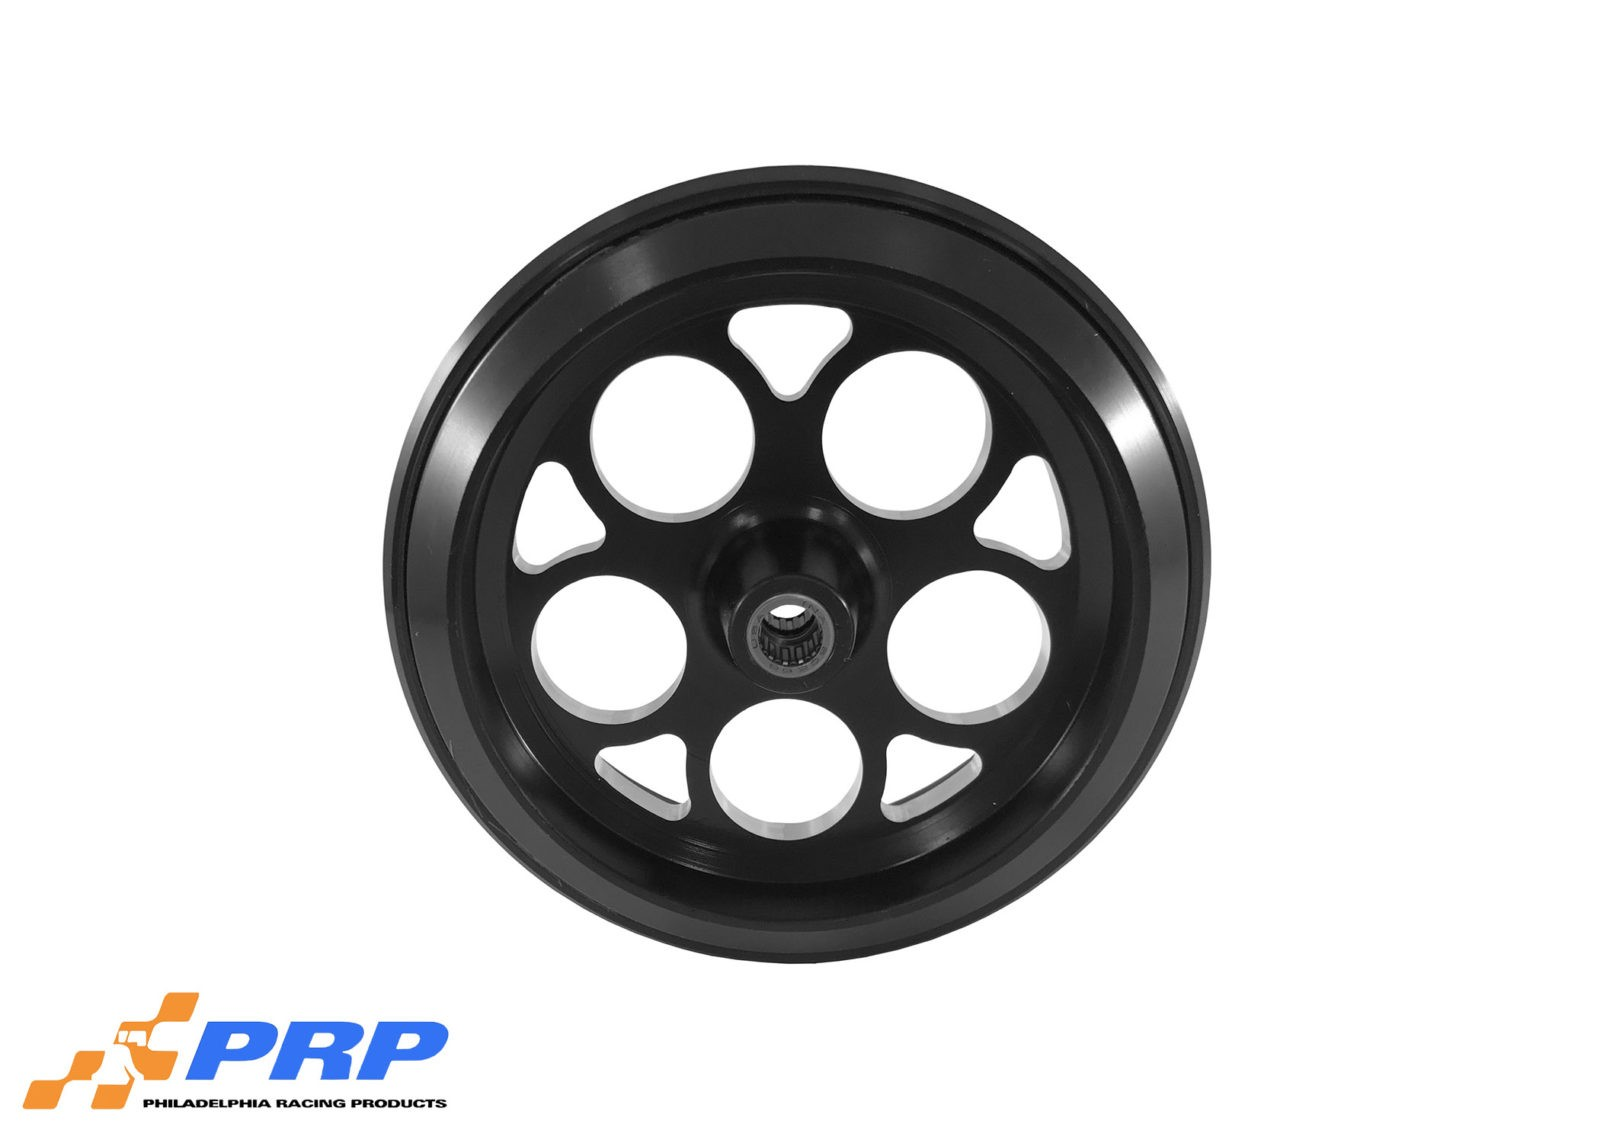 Black Anodized Hole Style with Bearing made by PRP Racing Products